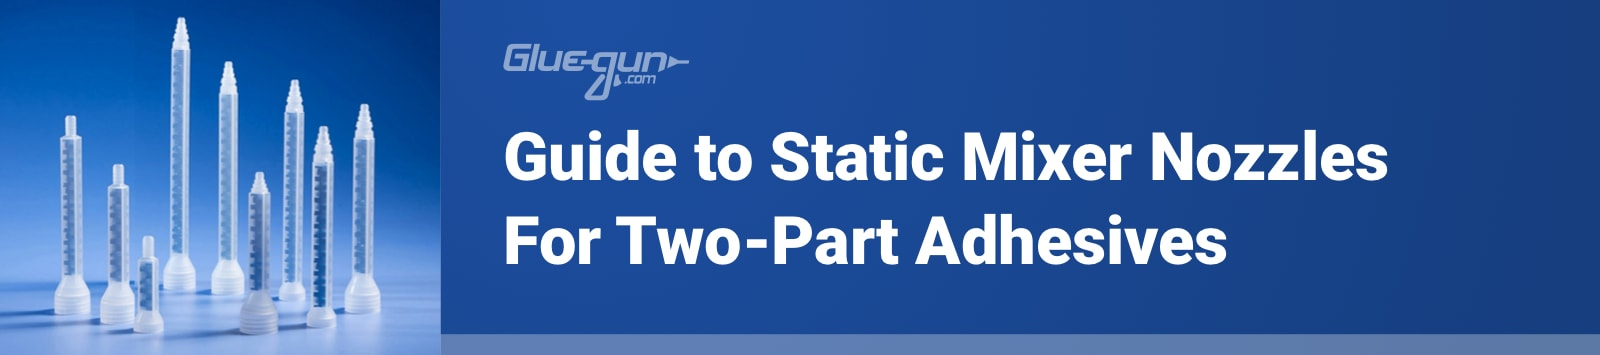 Ultimate Guide to Static Mixers for 2-Part Adhesives